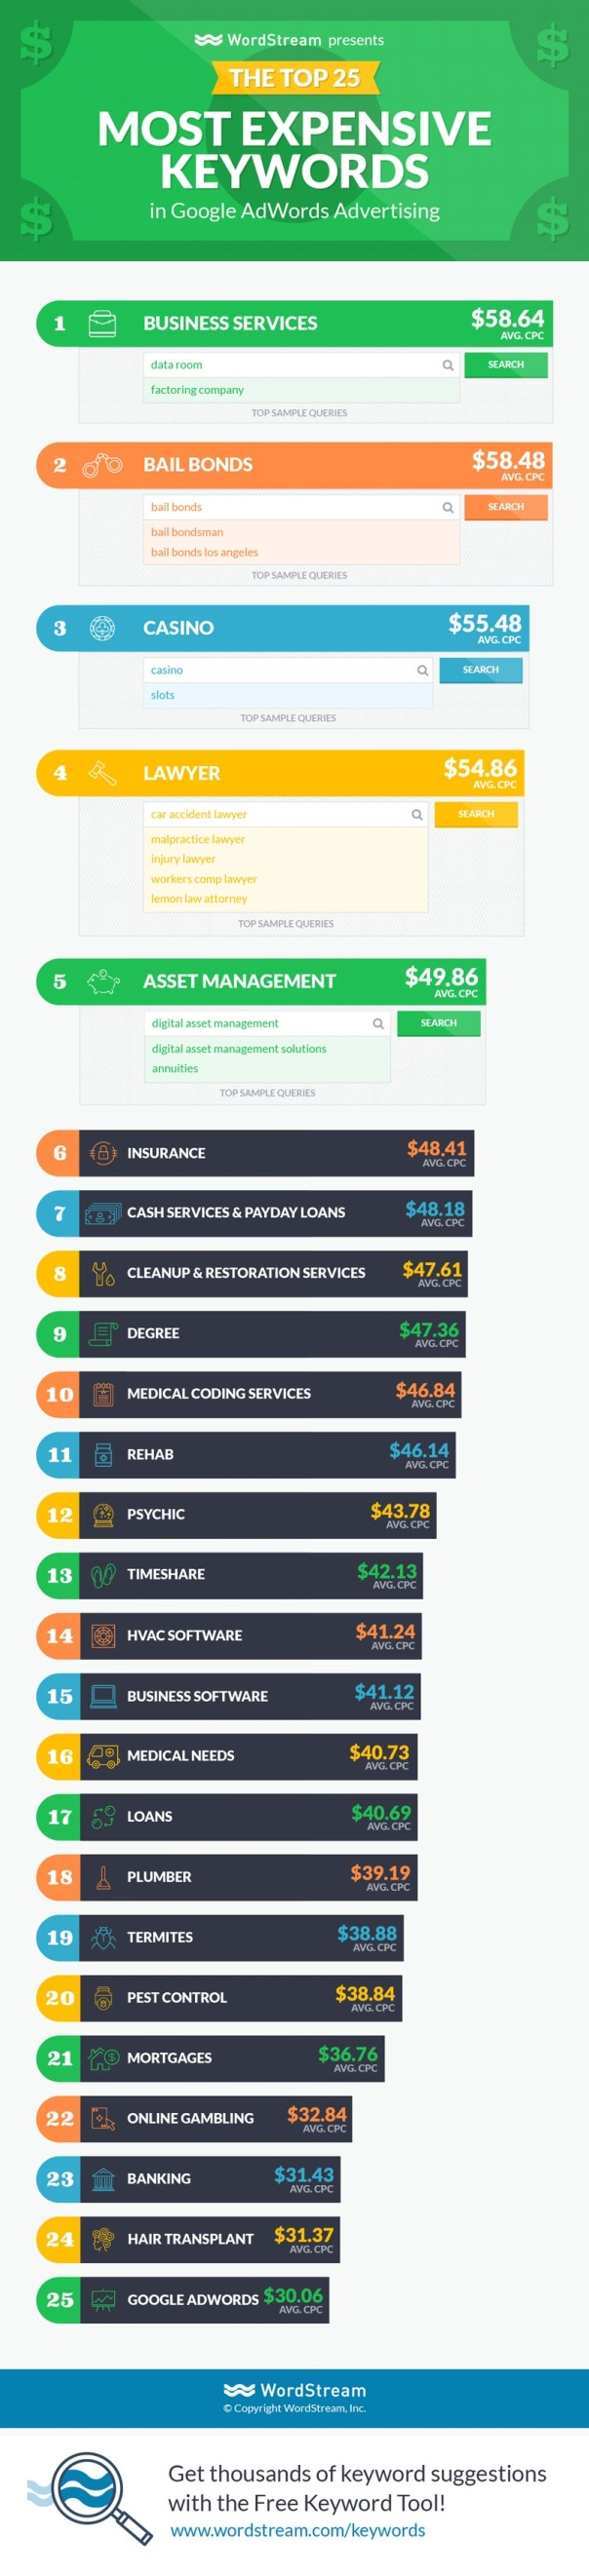 The 25 Most Expensive Keywords in AdWords – 2017 Edition!